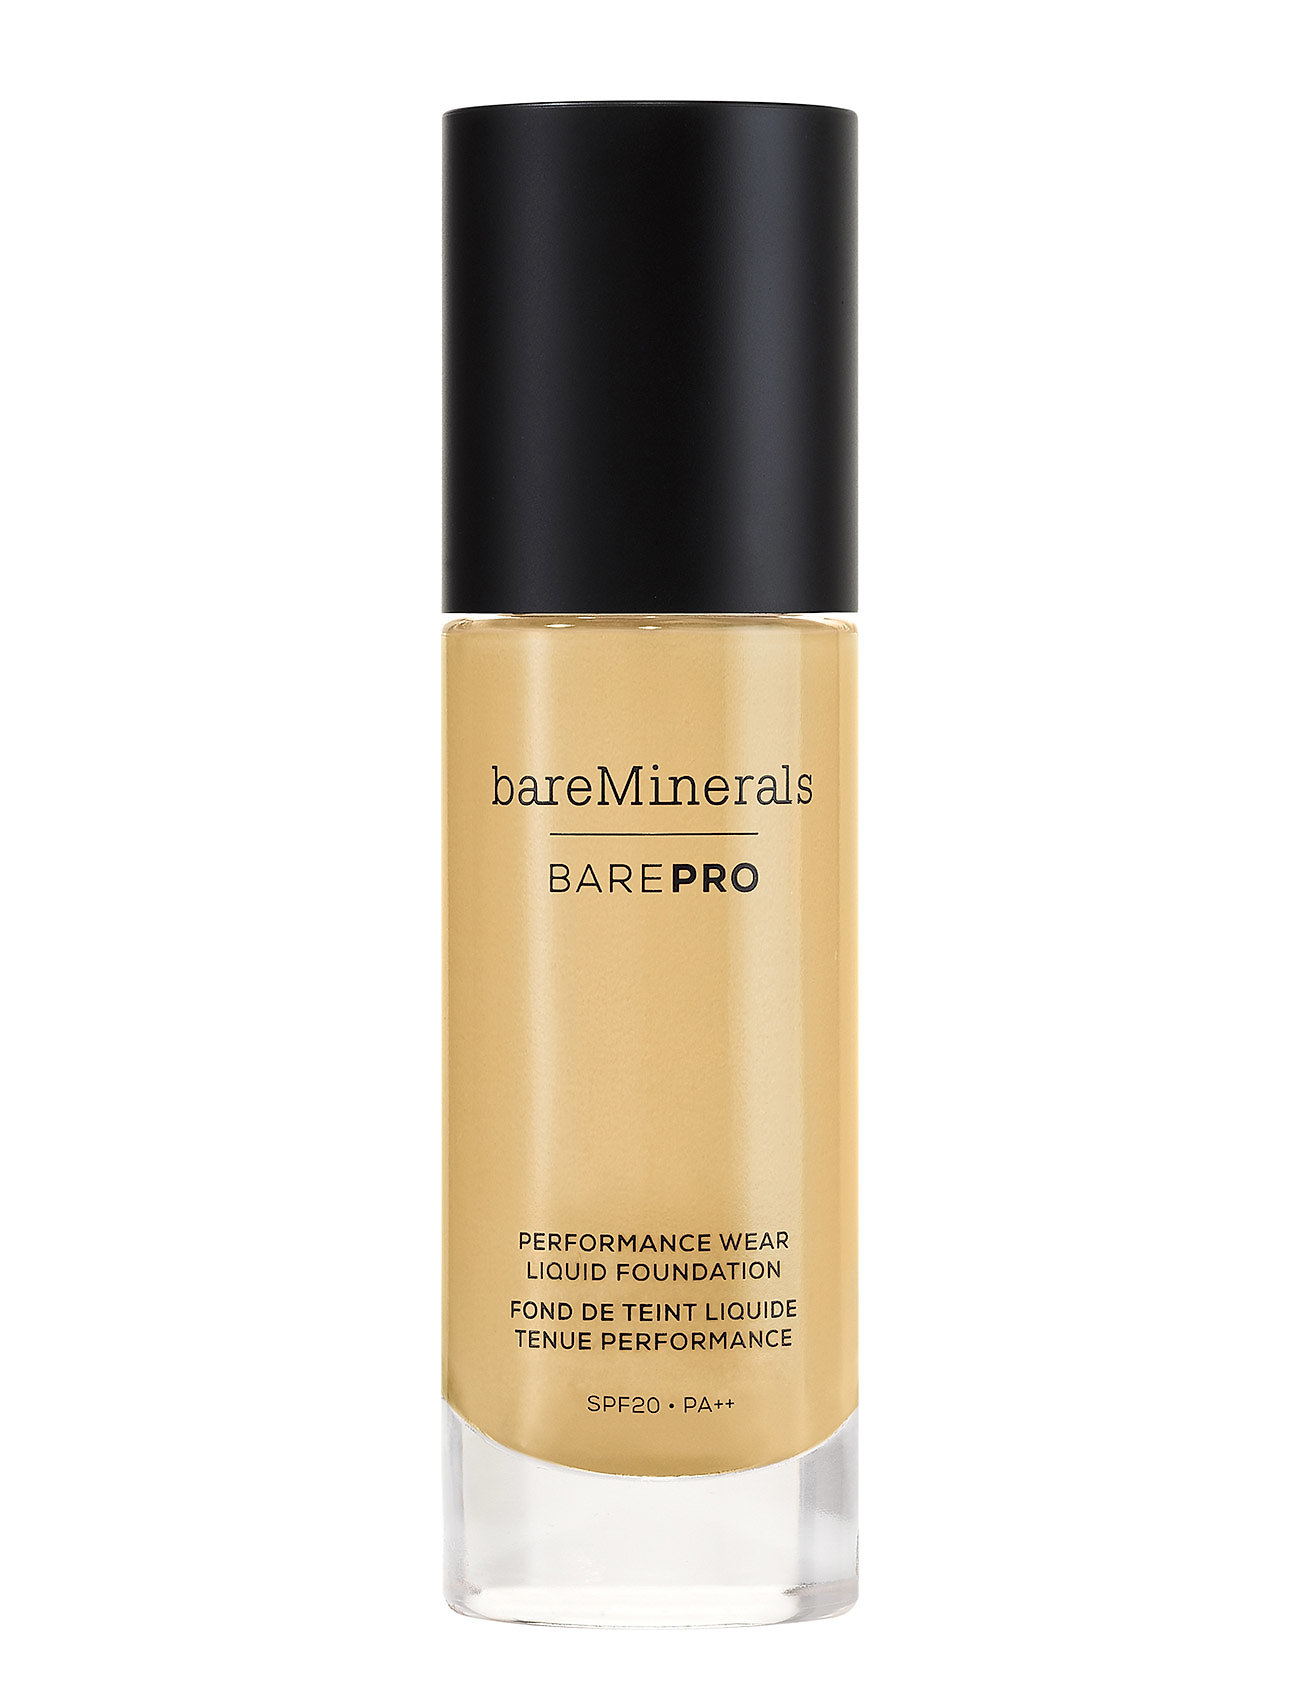 Image of Barepro Performance Wear Liquid Foundation Spf 20 Foundation Makeup BareMinerals (3067521589)